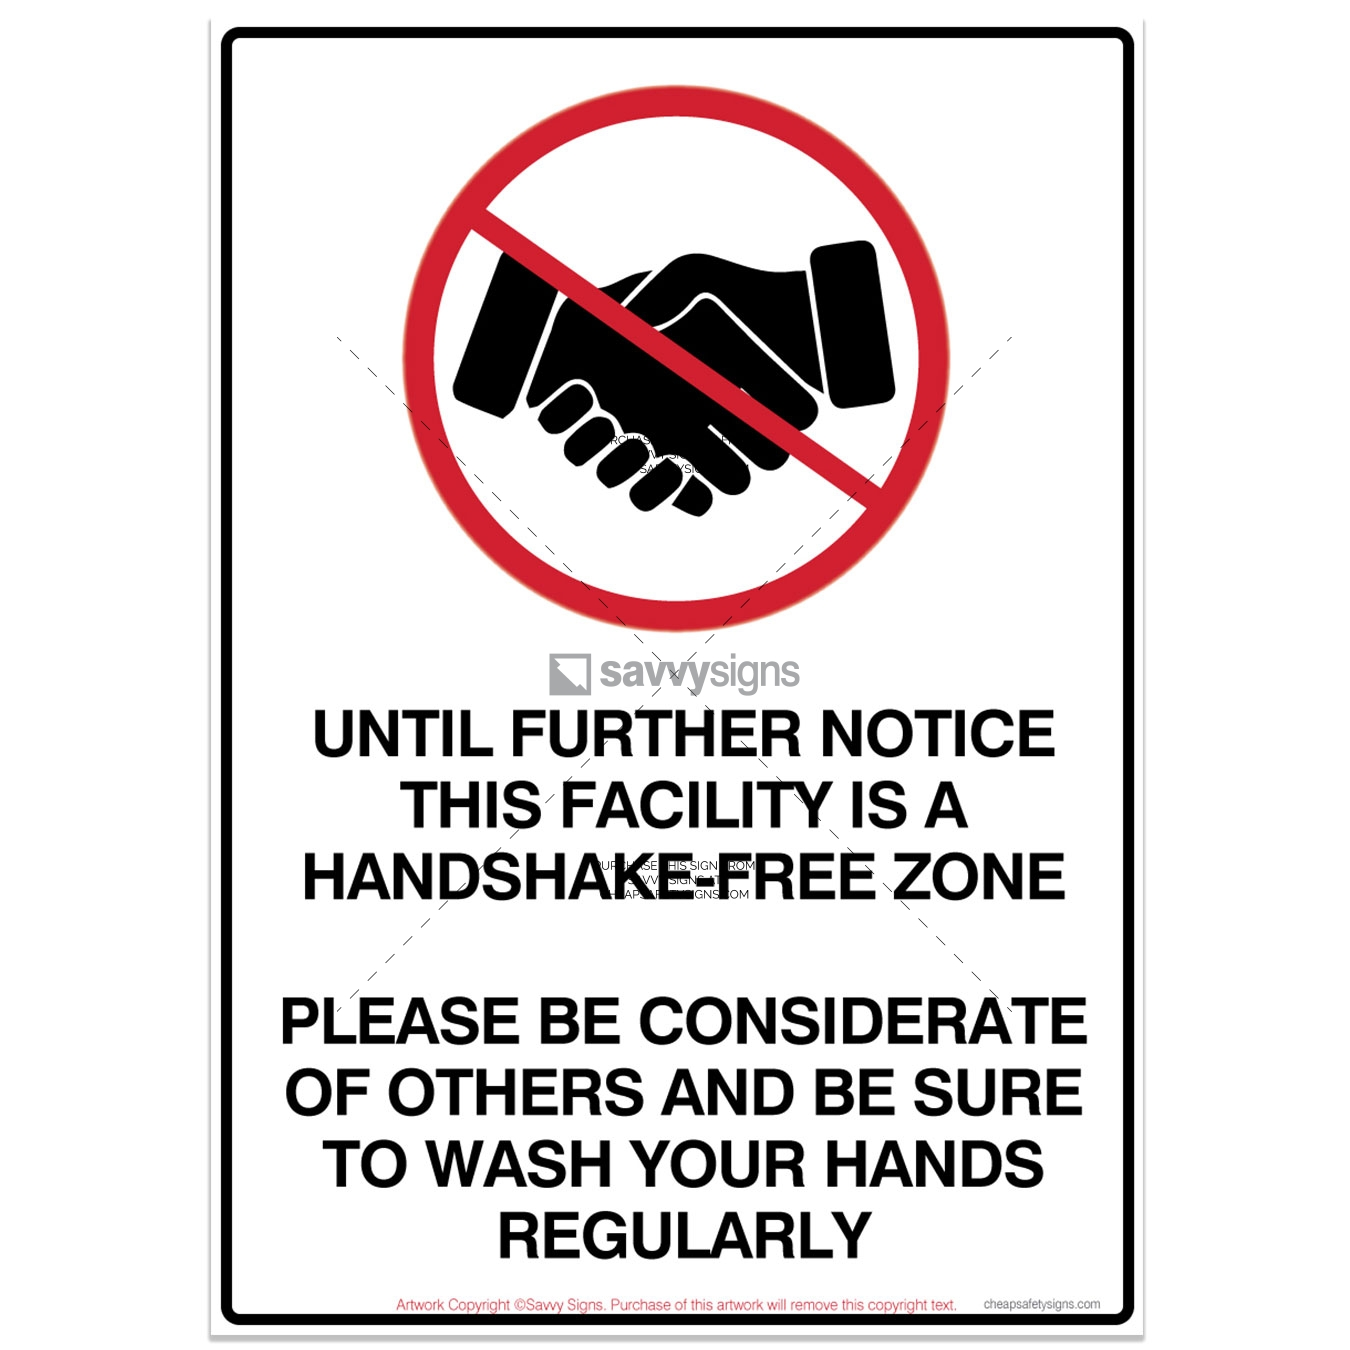 SSSTCOV3P004-COVID19-Handshake-Free-Zone-Safety-Signs_vsq3